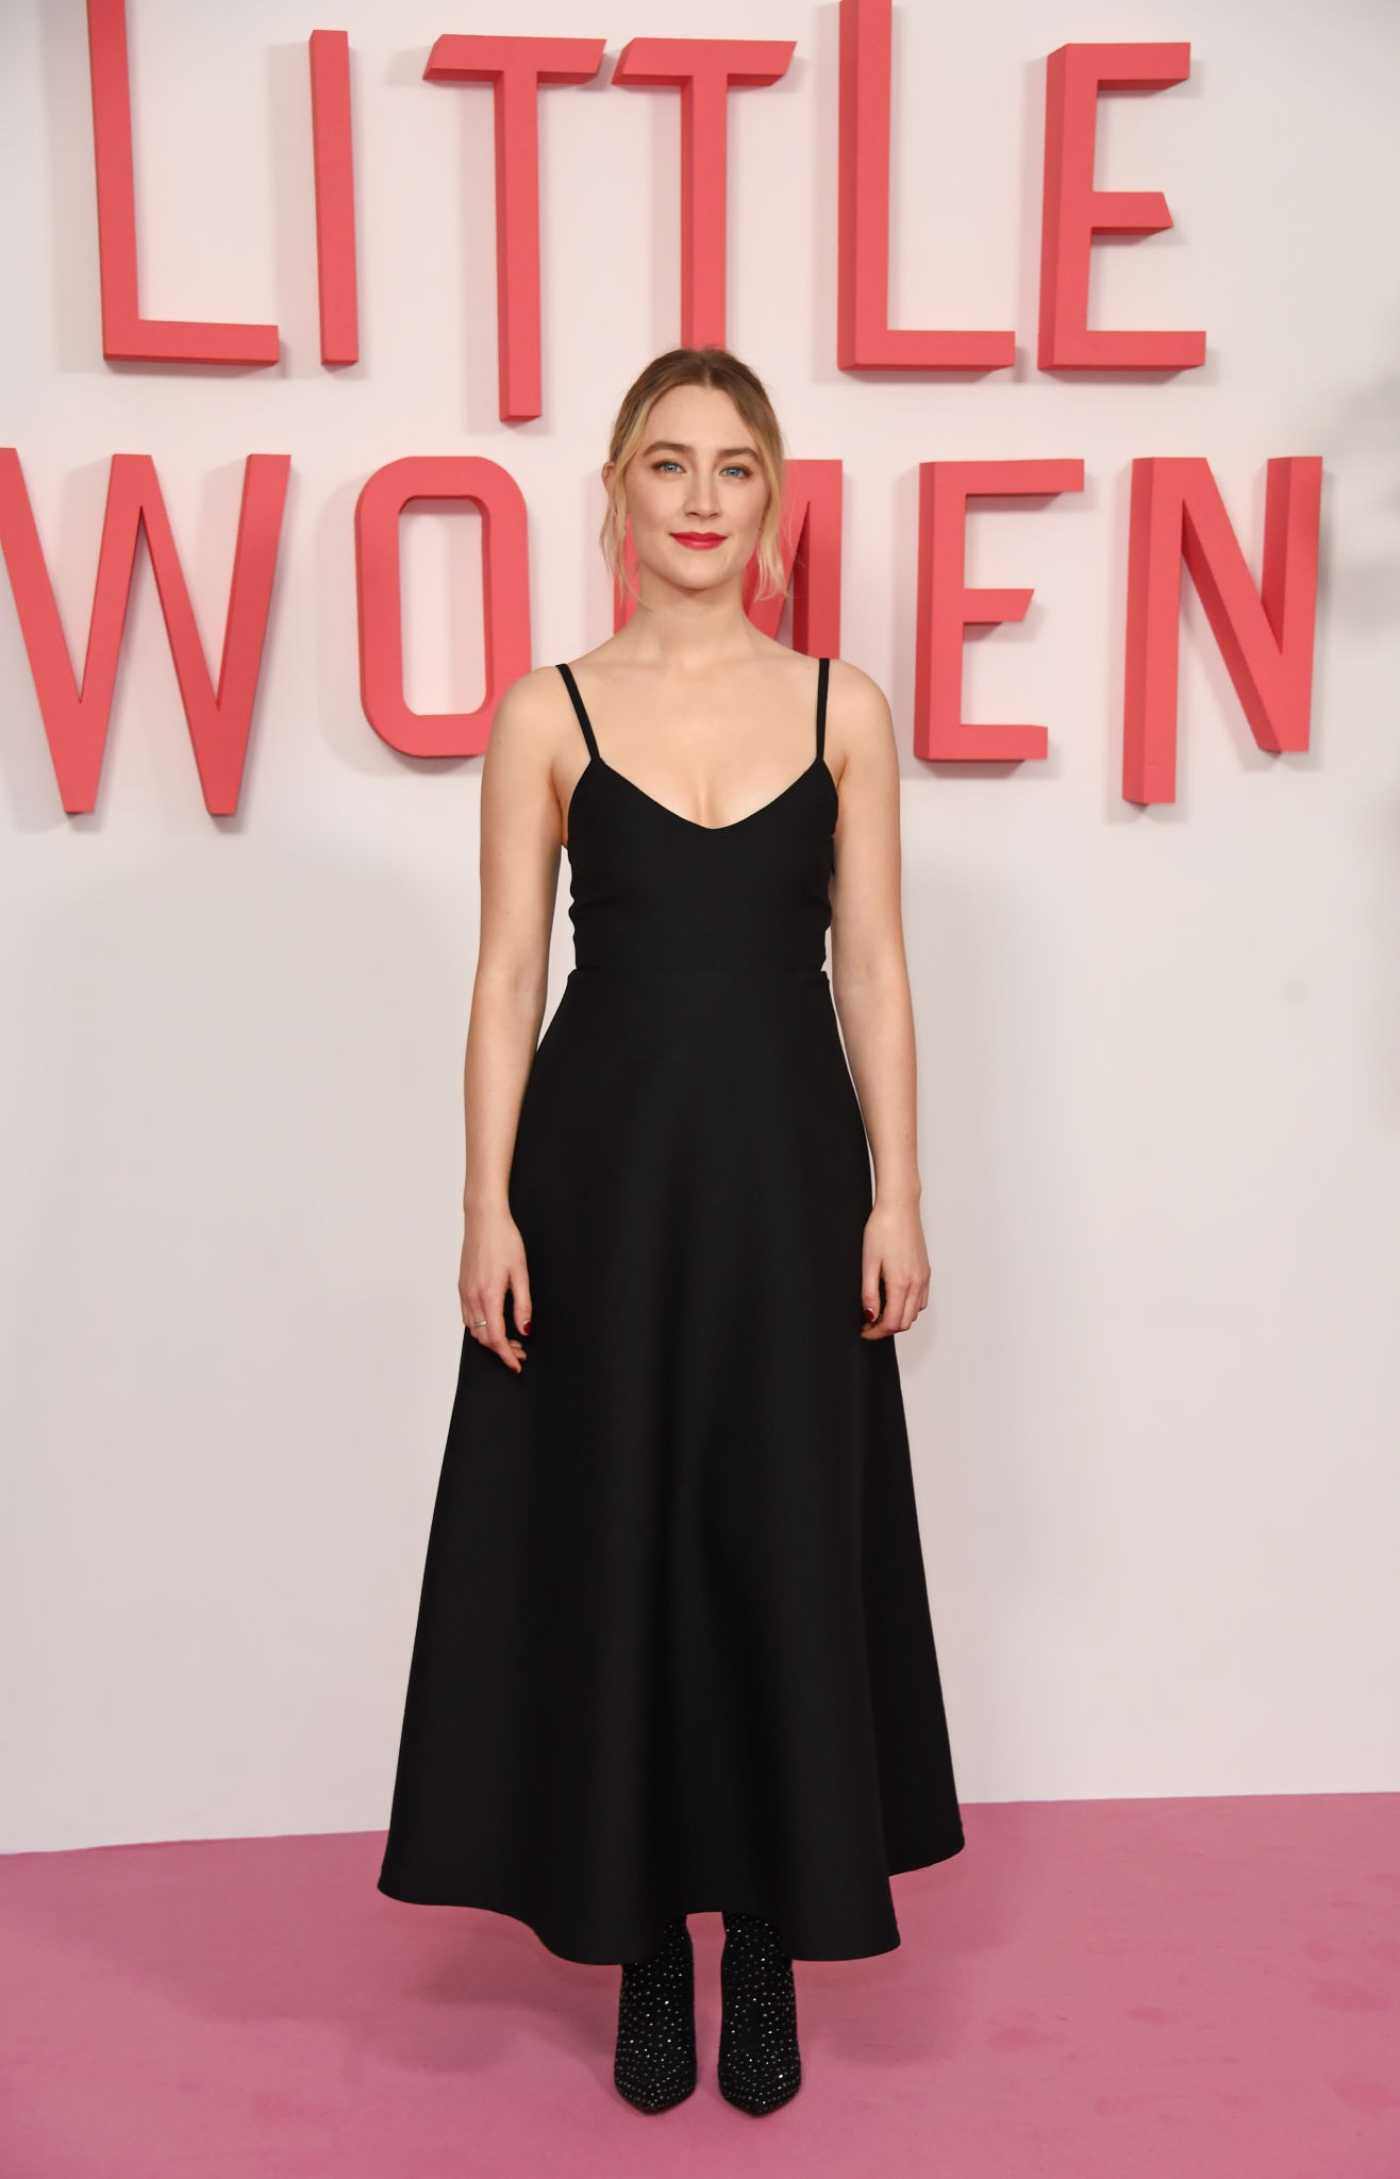 Saoirse Ronan Attends the Little Women Photocall at the Soho Hotel London in London 12/16/2019